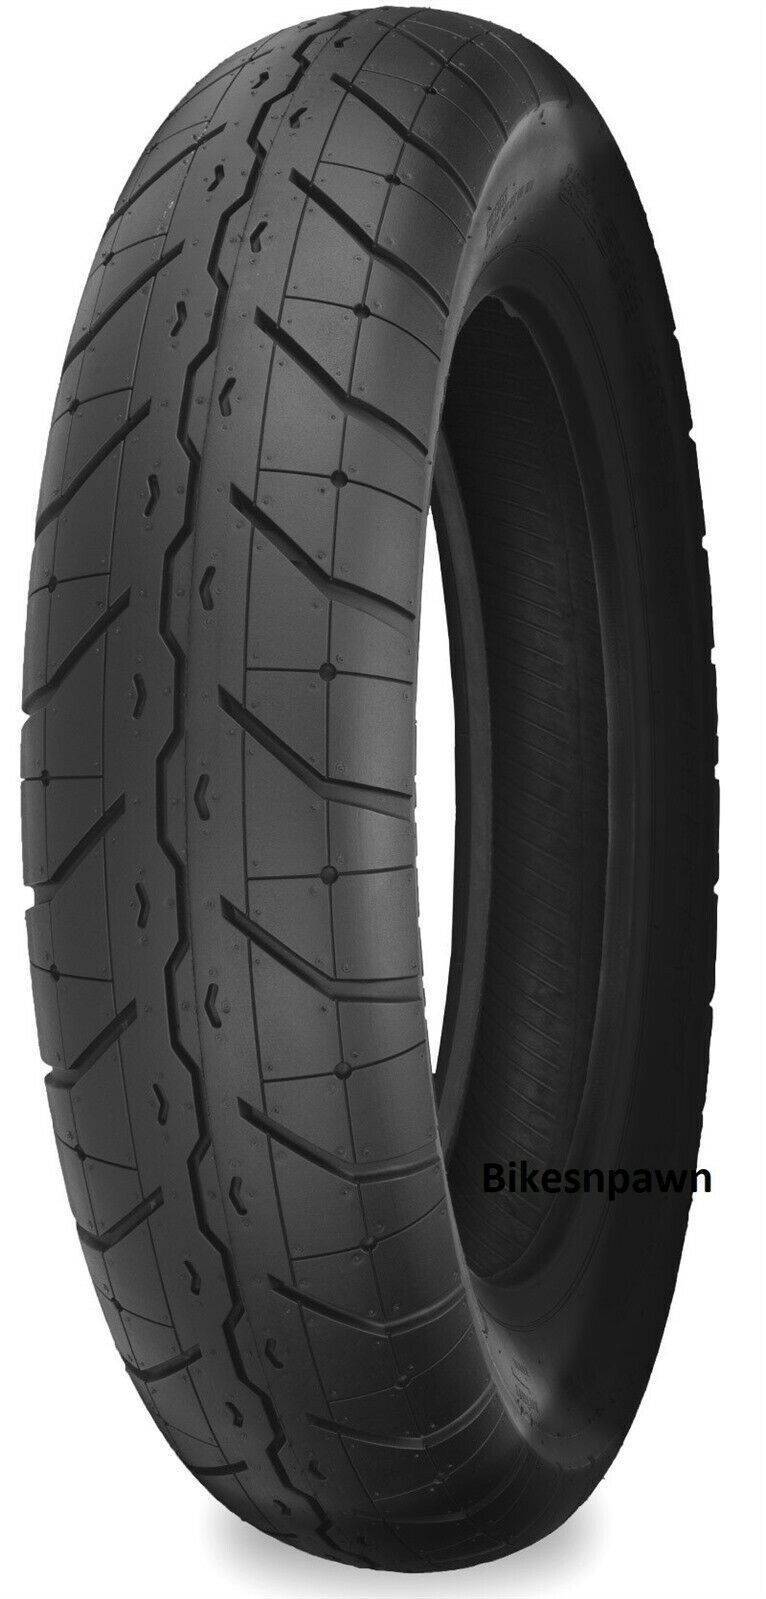 New Shinko 230 Tour Master 110/90-19 Front Motorcycle Tire 62V